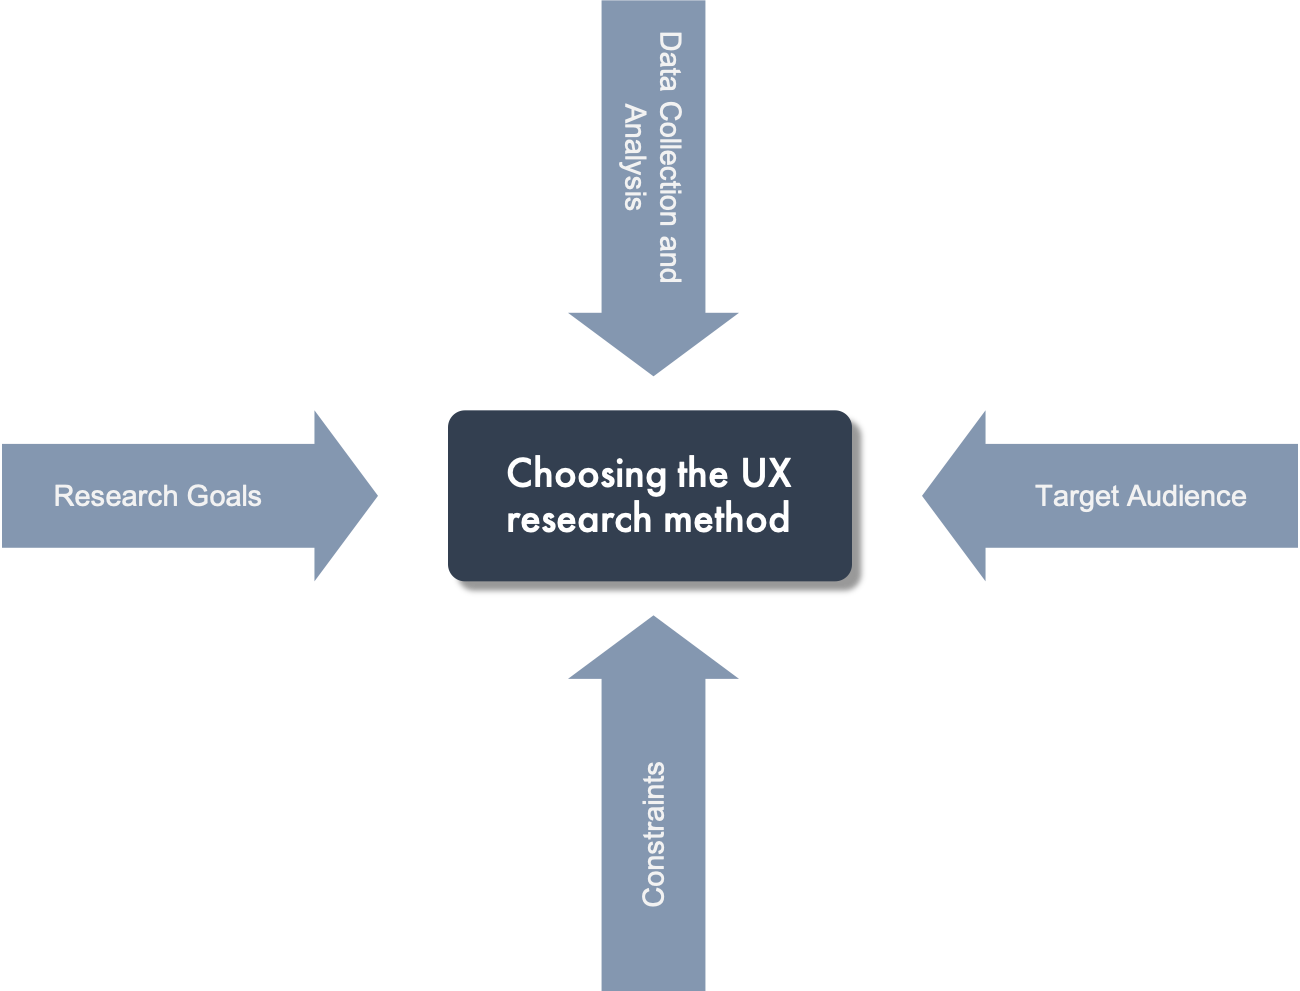 Choosing the Right UX Research Method